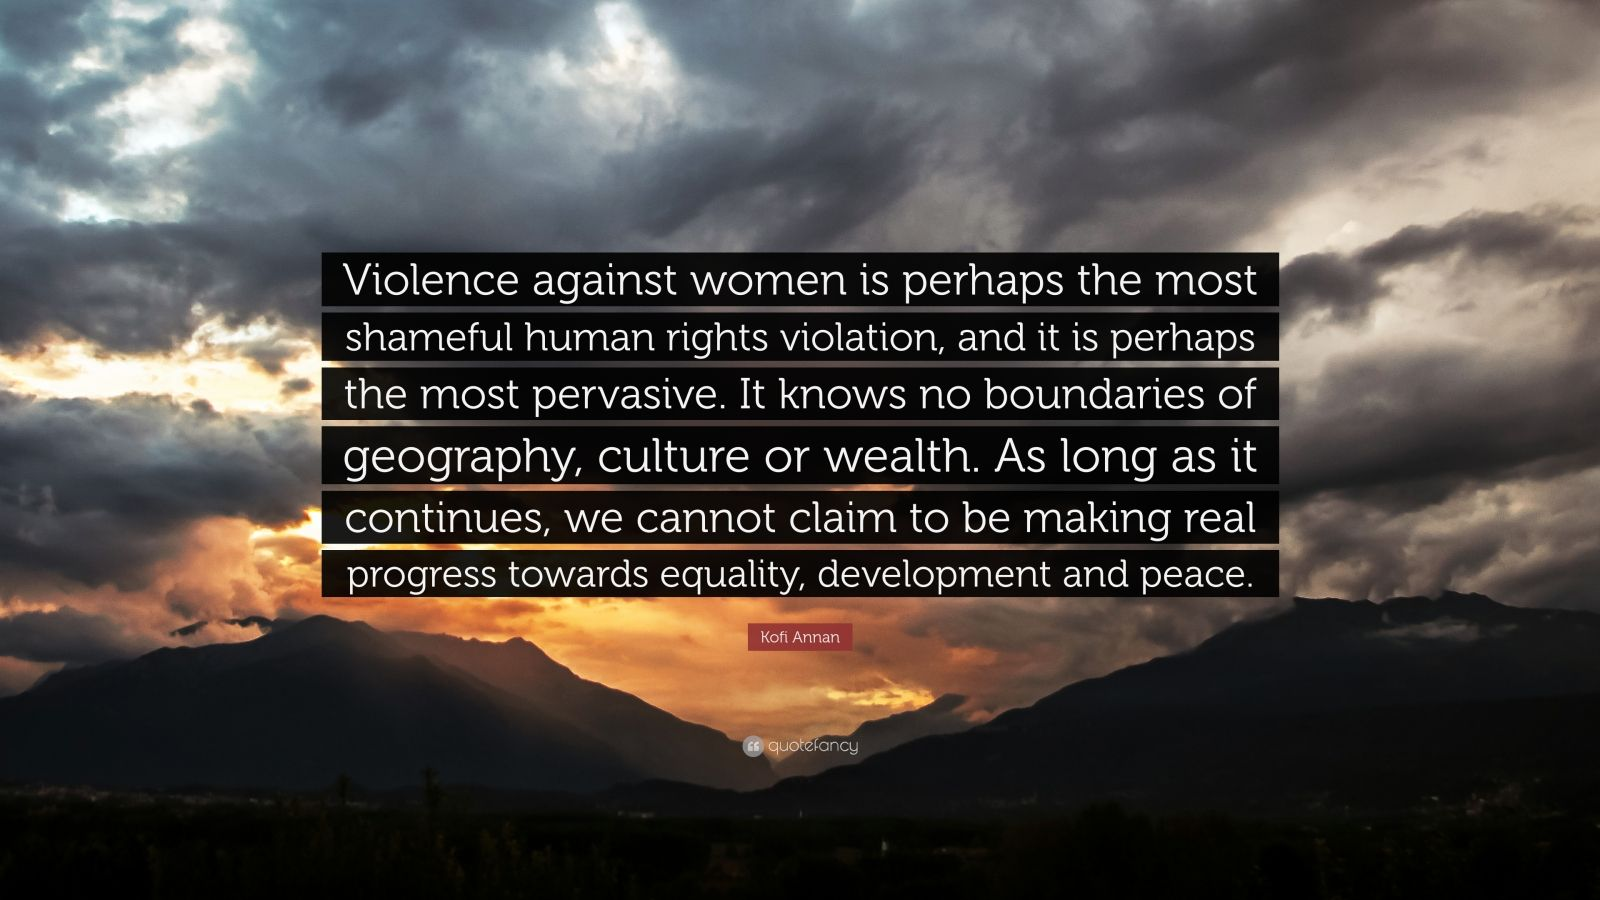 violation against women rights Violence against women and girls is a grave violation of human rights its impact ranges from immediate to long-term multiple physical, sexual and mental consequences for women and girls, including death it negatively affects women's general well-being and prevents women from fully participating in society.